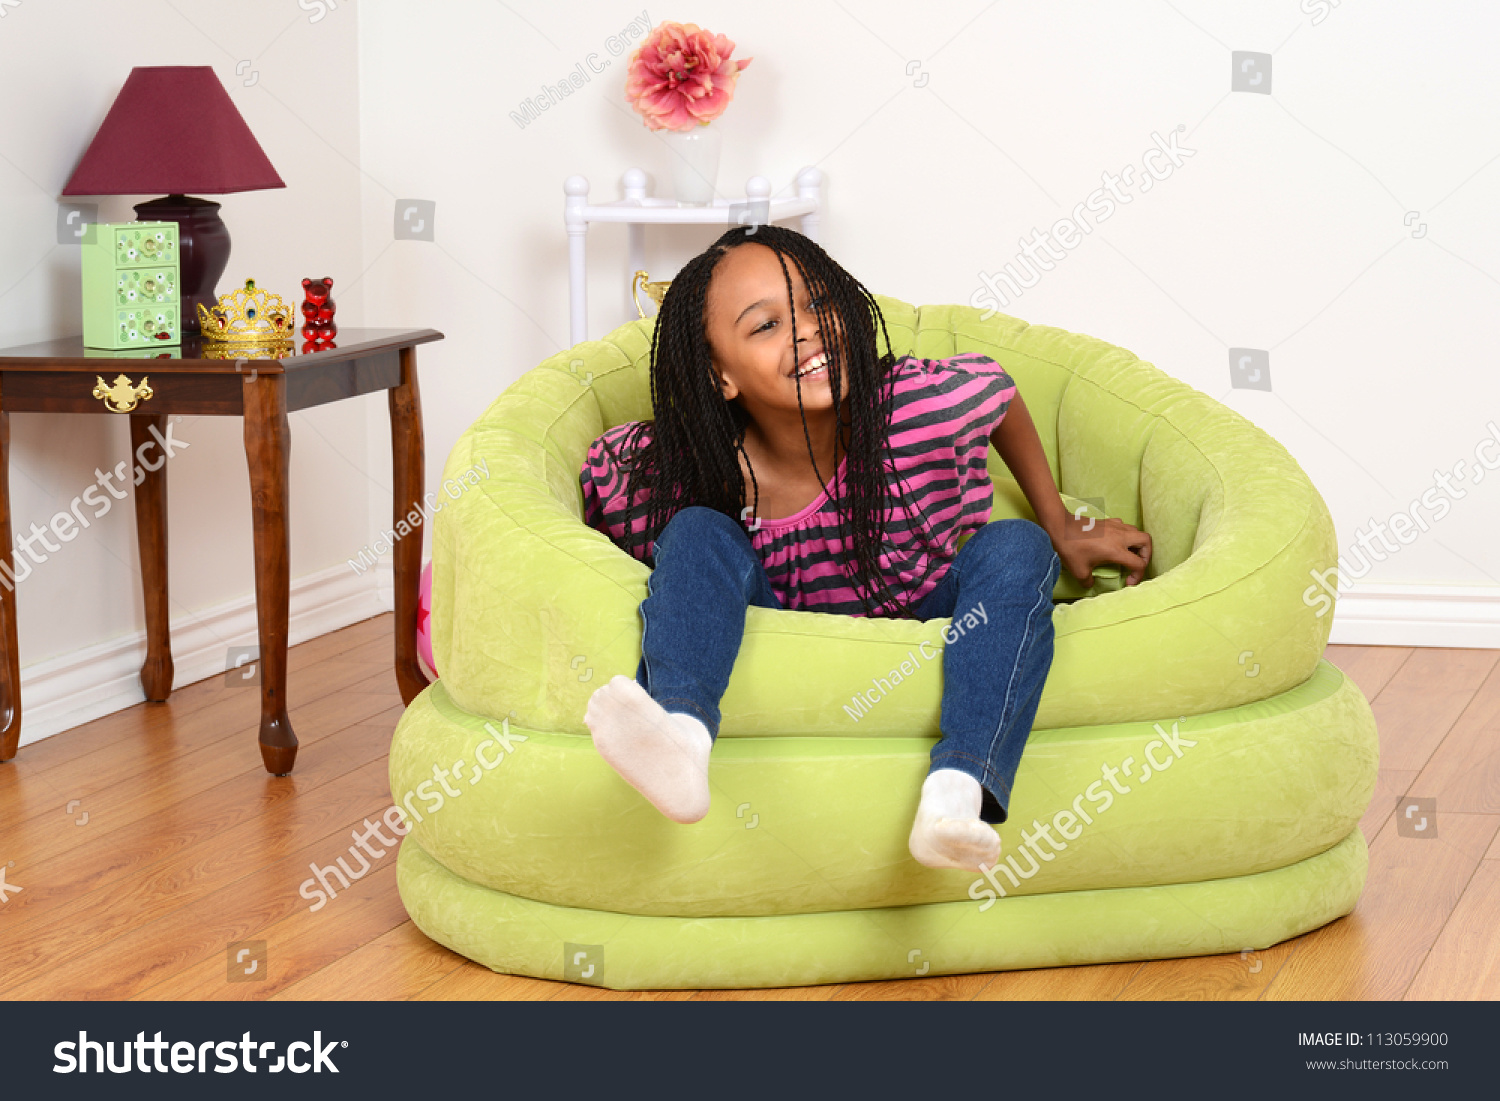 Black child sitting in chair - Young Black Child Trying To Get Out Of Chair